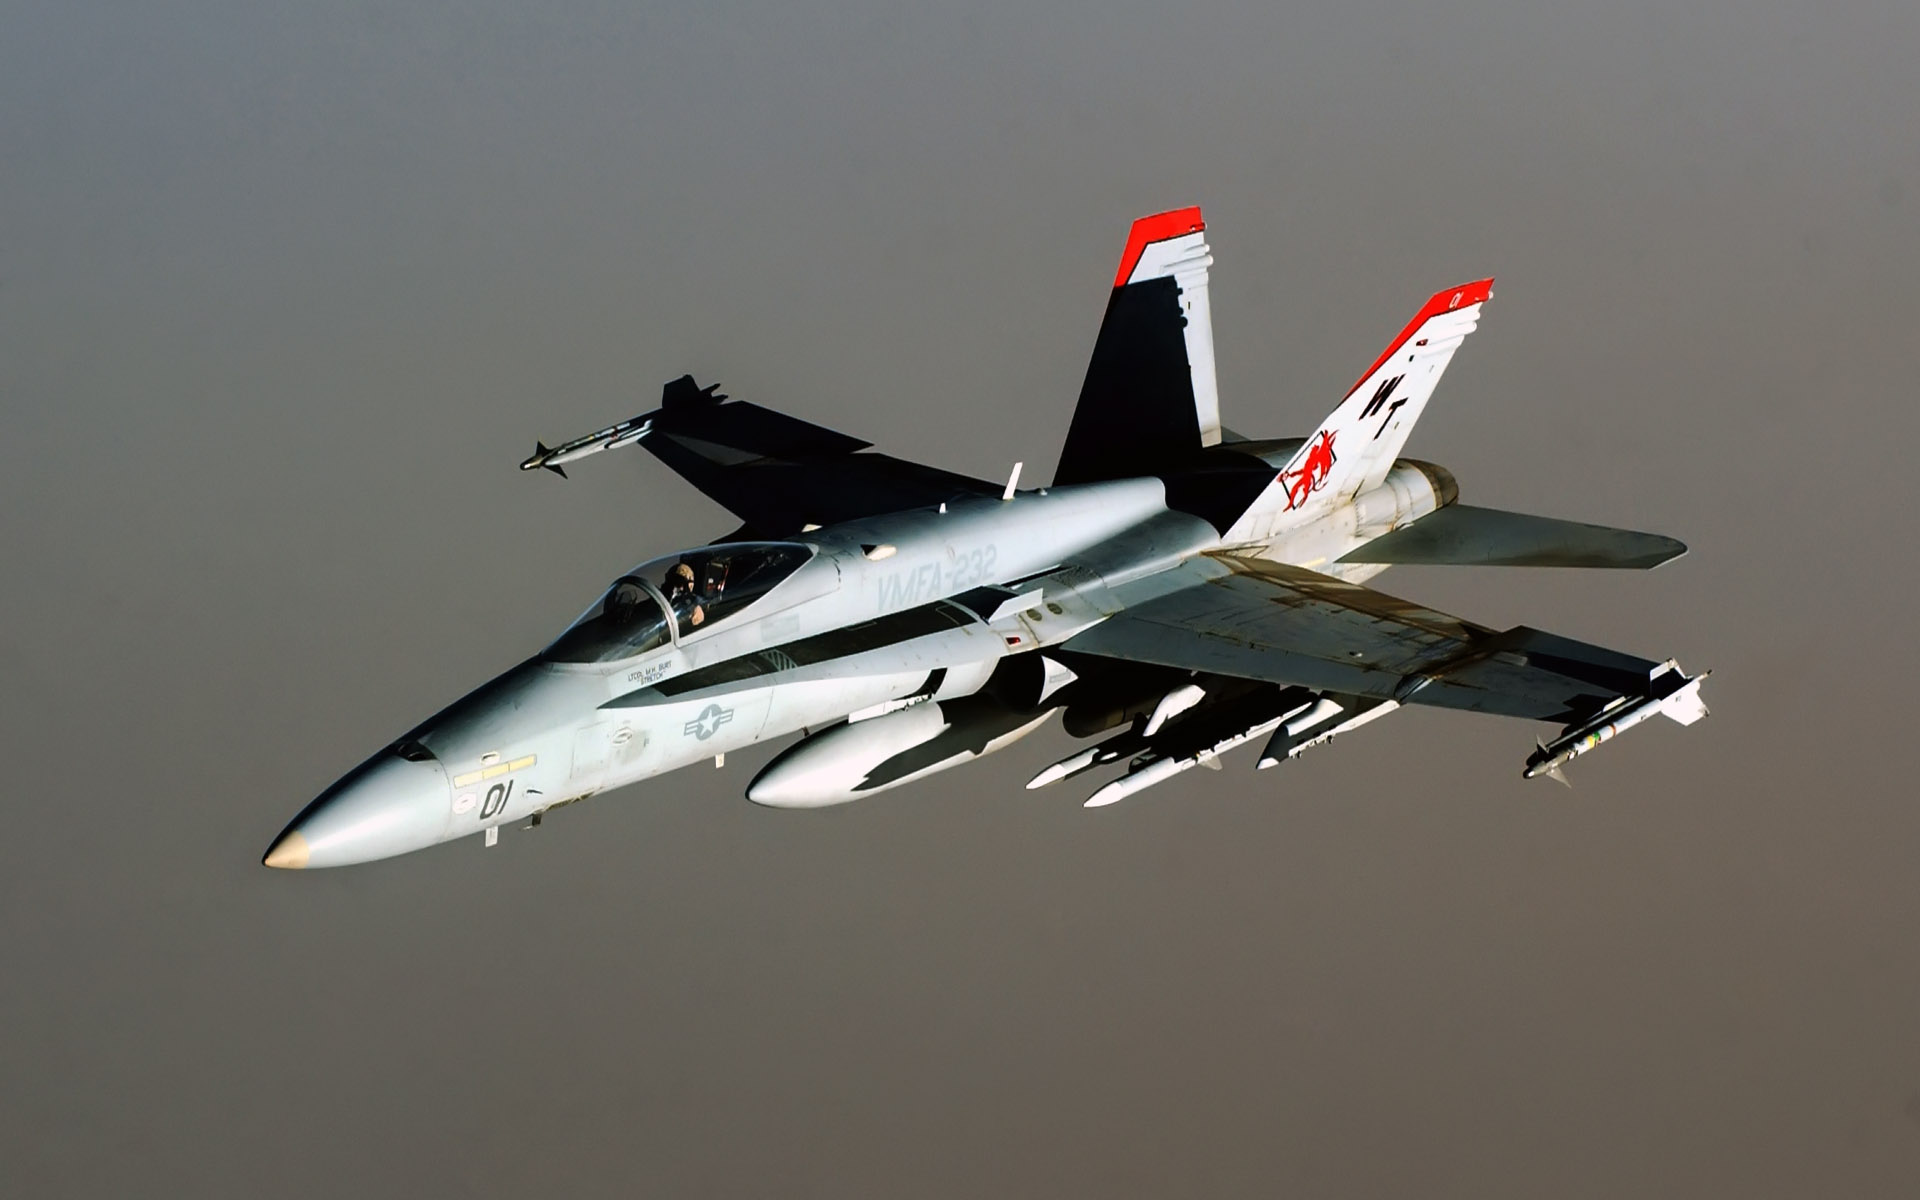 FA 18 Hornet Aircraft Wallpapers HD Wallpapers 1920x1200